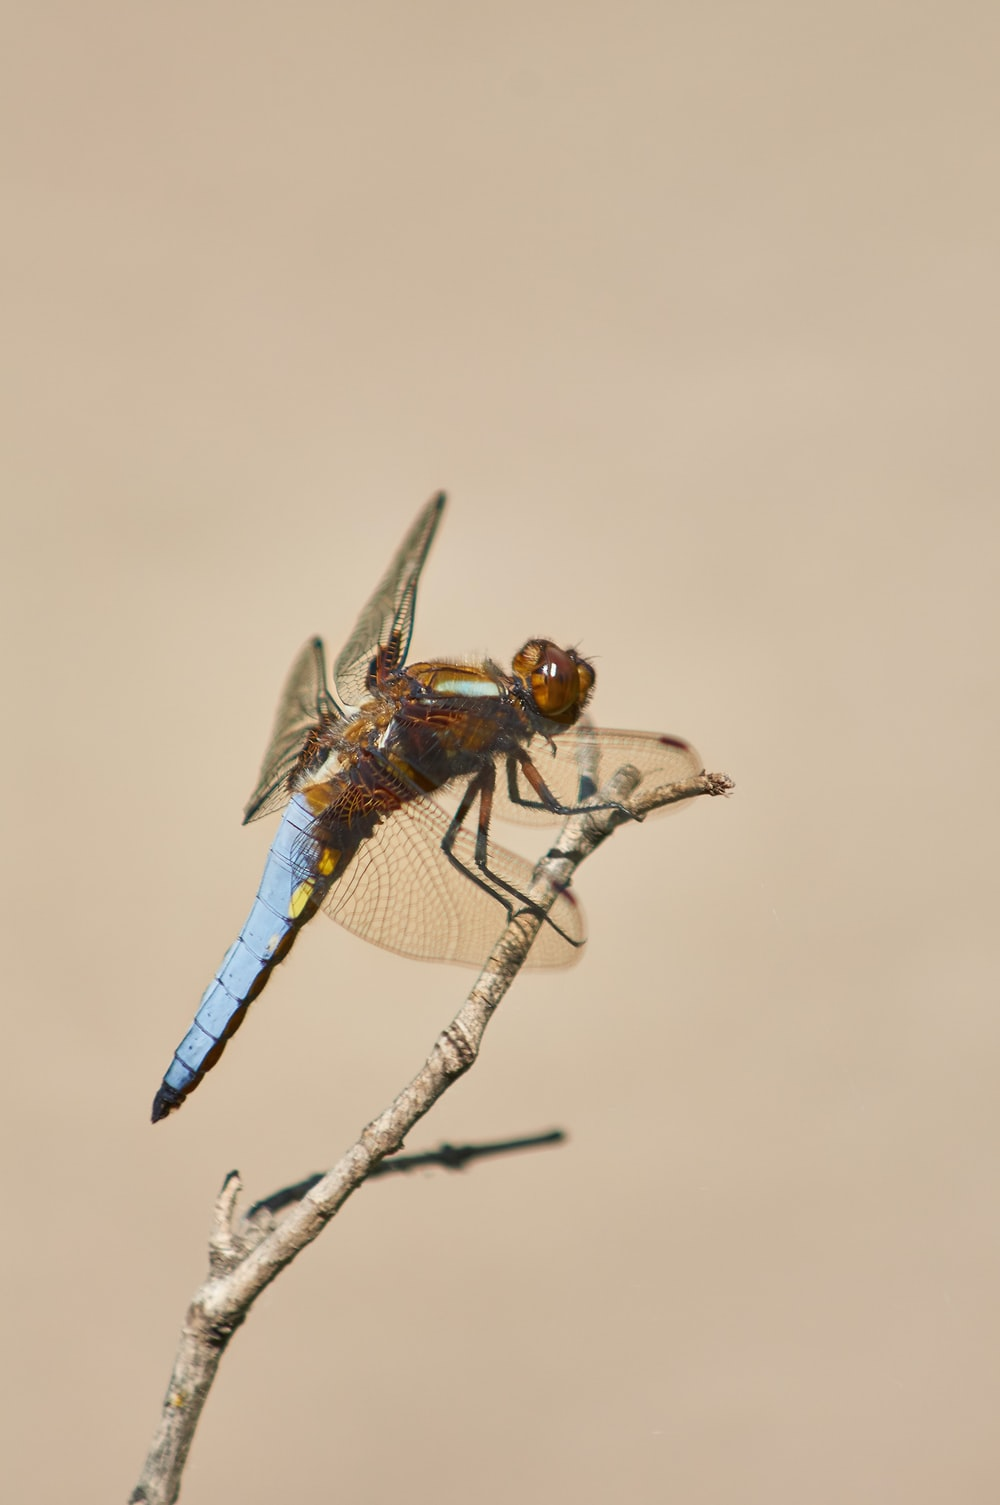 blue and brown dragonfly perched on brown stem in close up photography during daytime